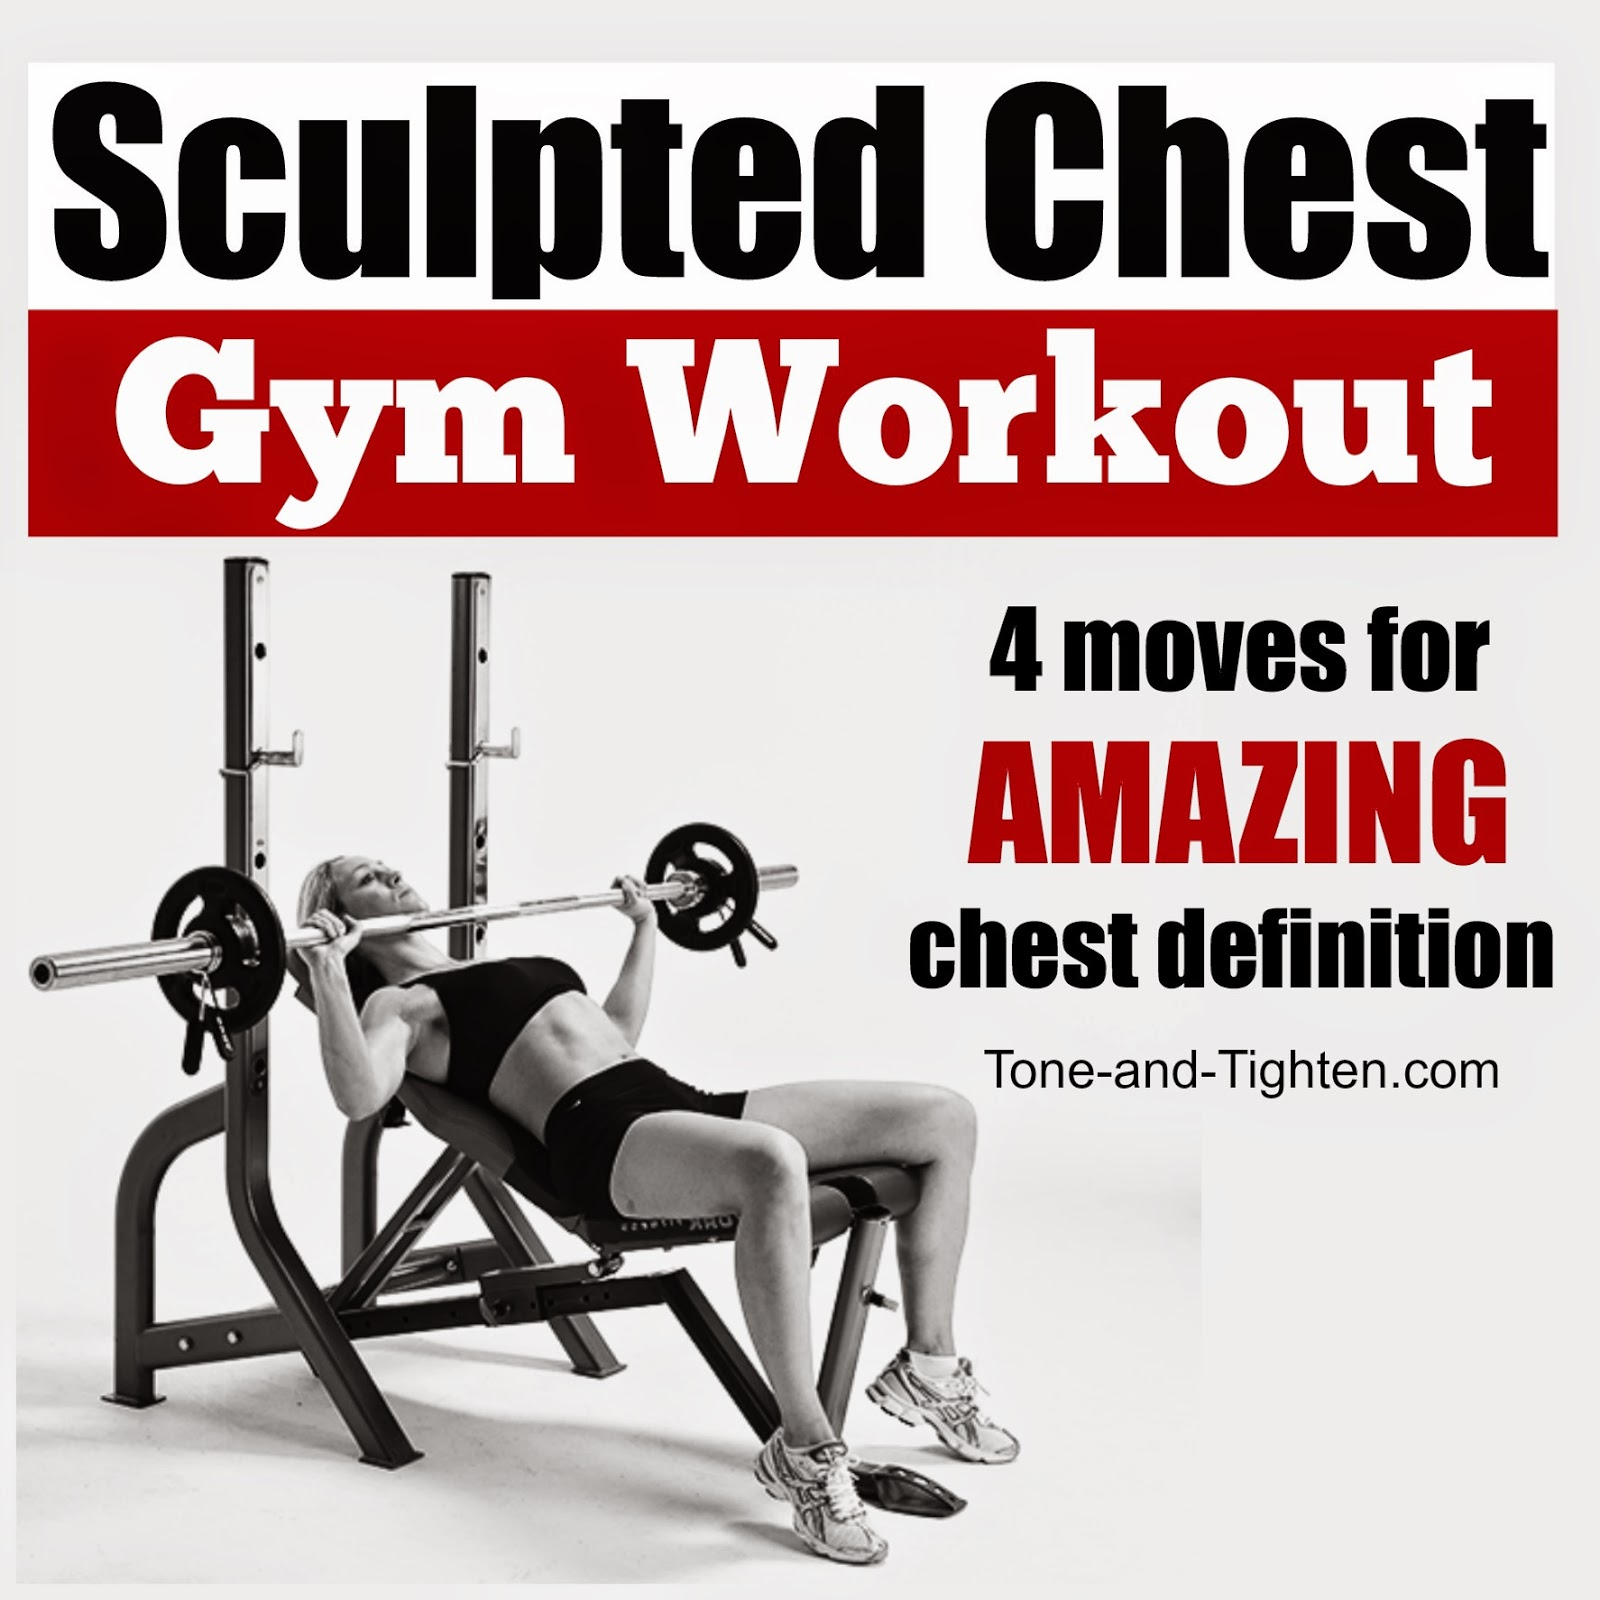 That Means Starting Your Workout With The Most Challenging Exercises And Heaviest Loadting Thighs From A Variety Of Angles Keeping Volume